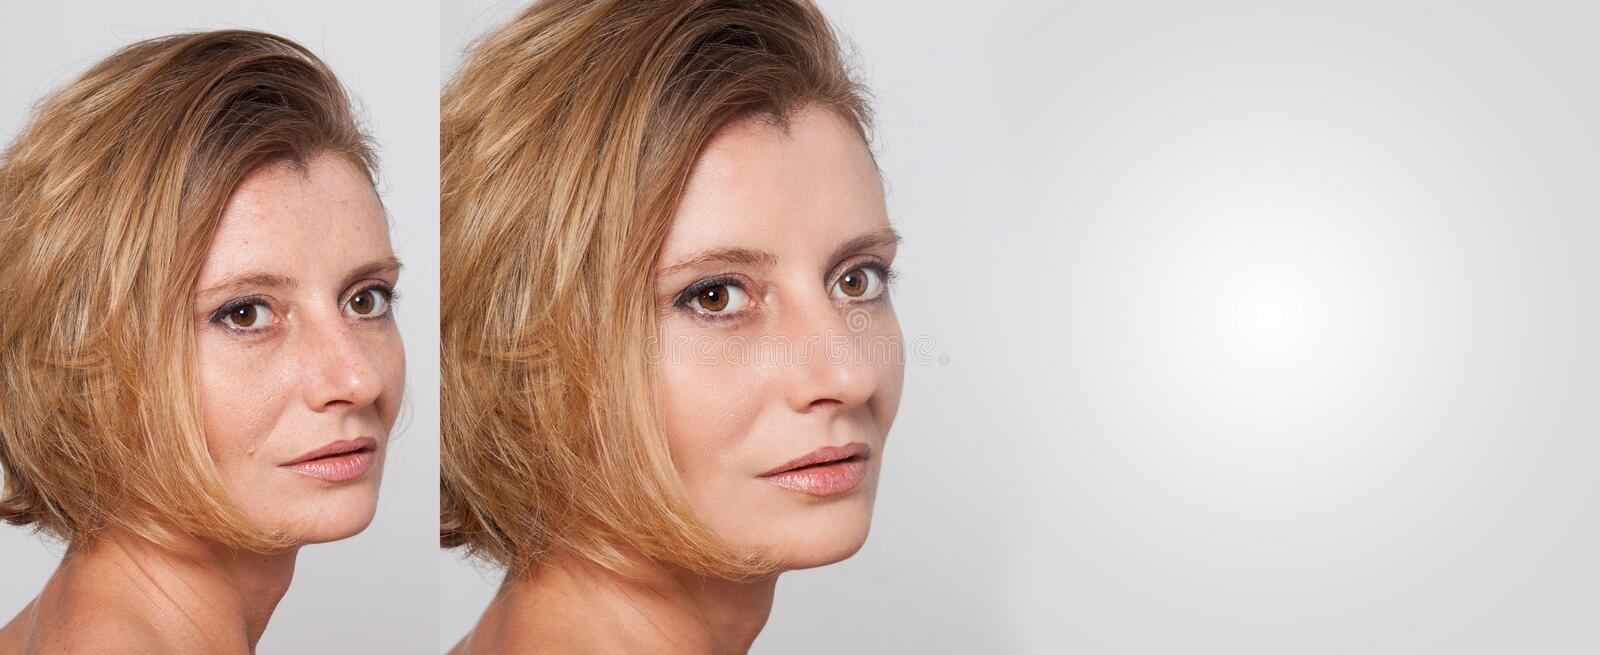 Happy woman after beauty treatment - before/after shots - skin care, anti-aging procedures, rejuvenation, lifting, tightening of. Facial skin royalty free stock photo